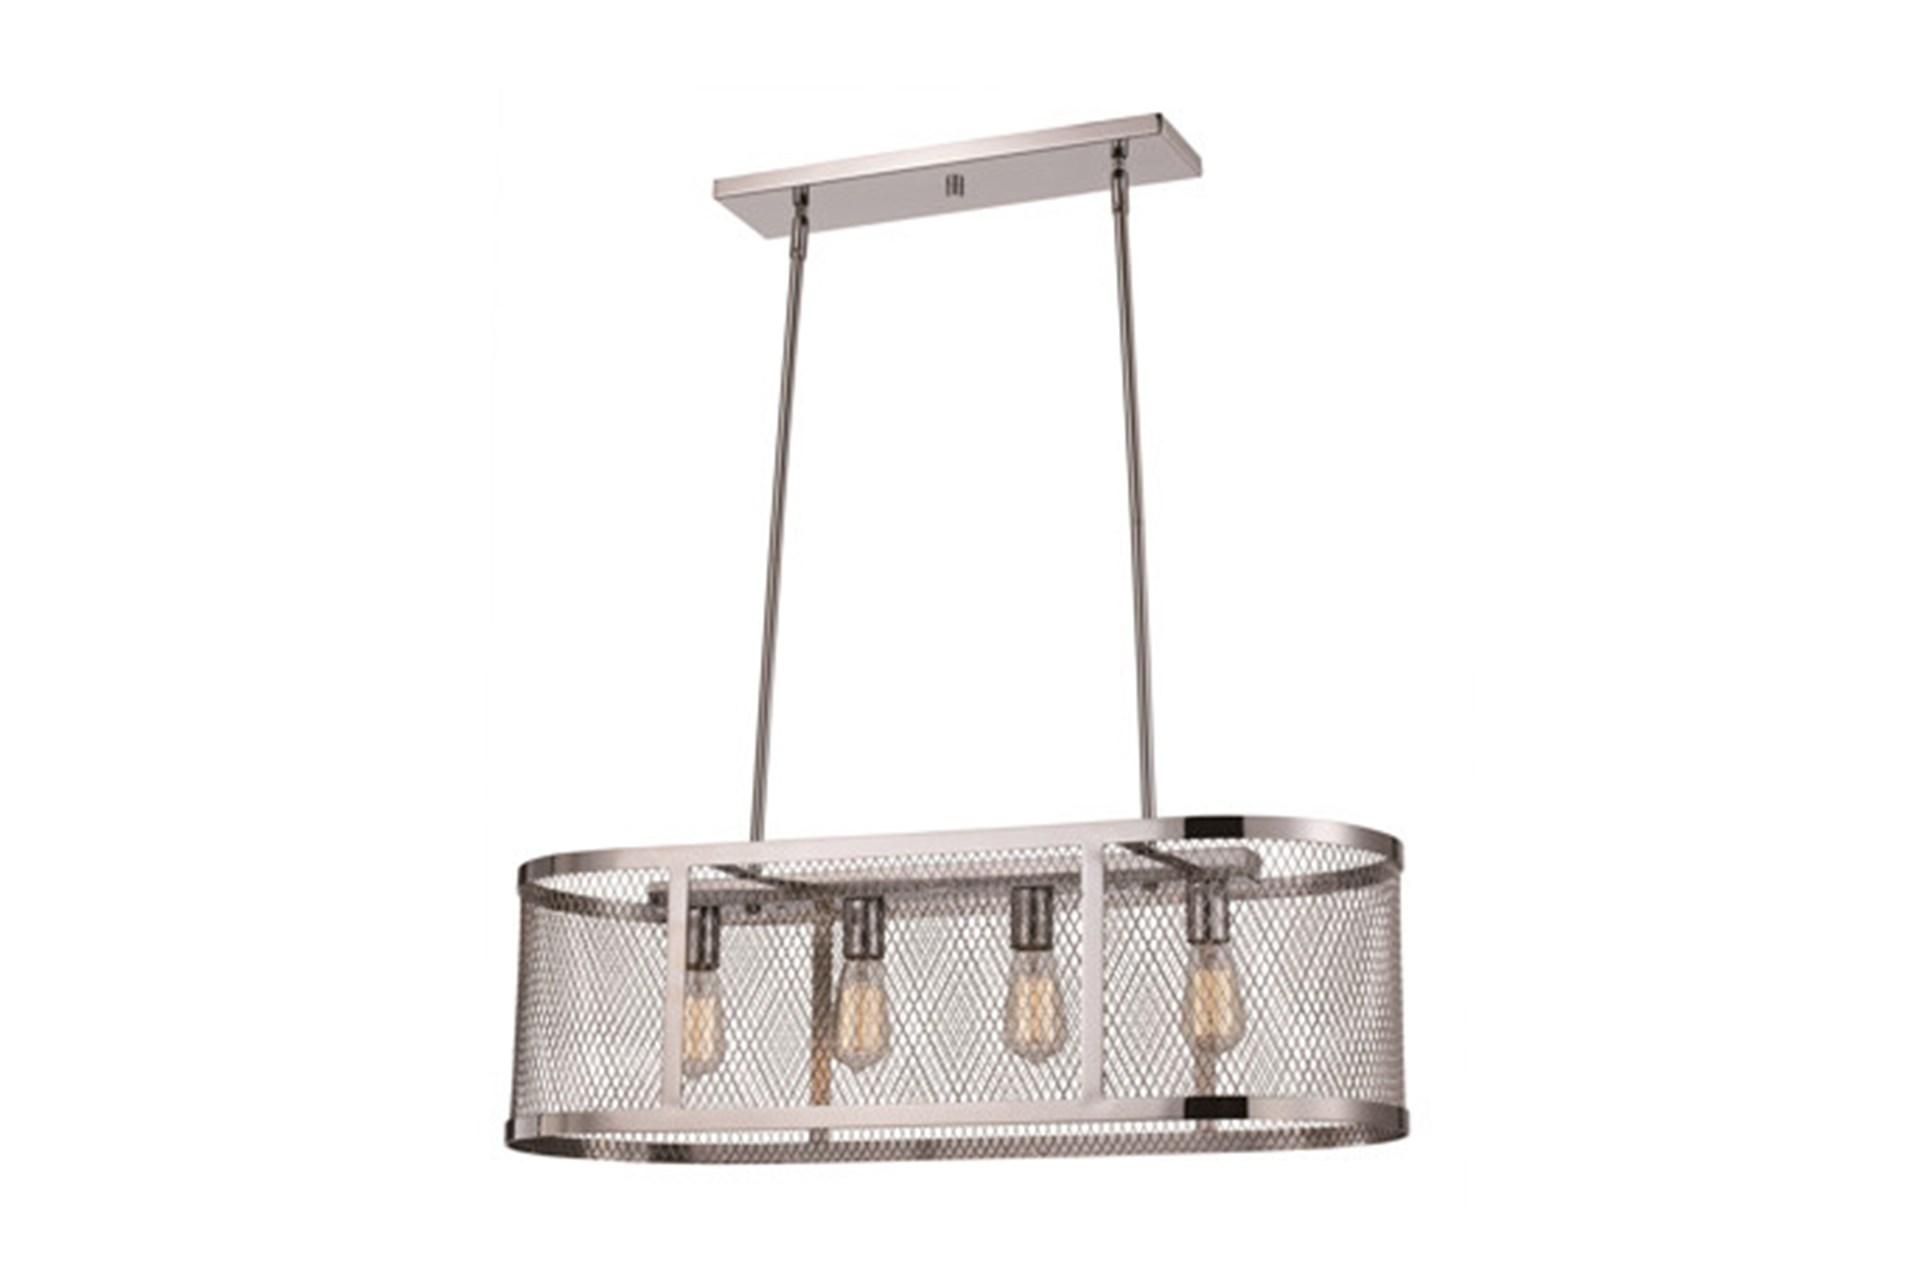 Pendant modern farmhouse chrome island qty 1 has been successfully added to your cart